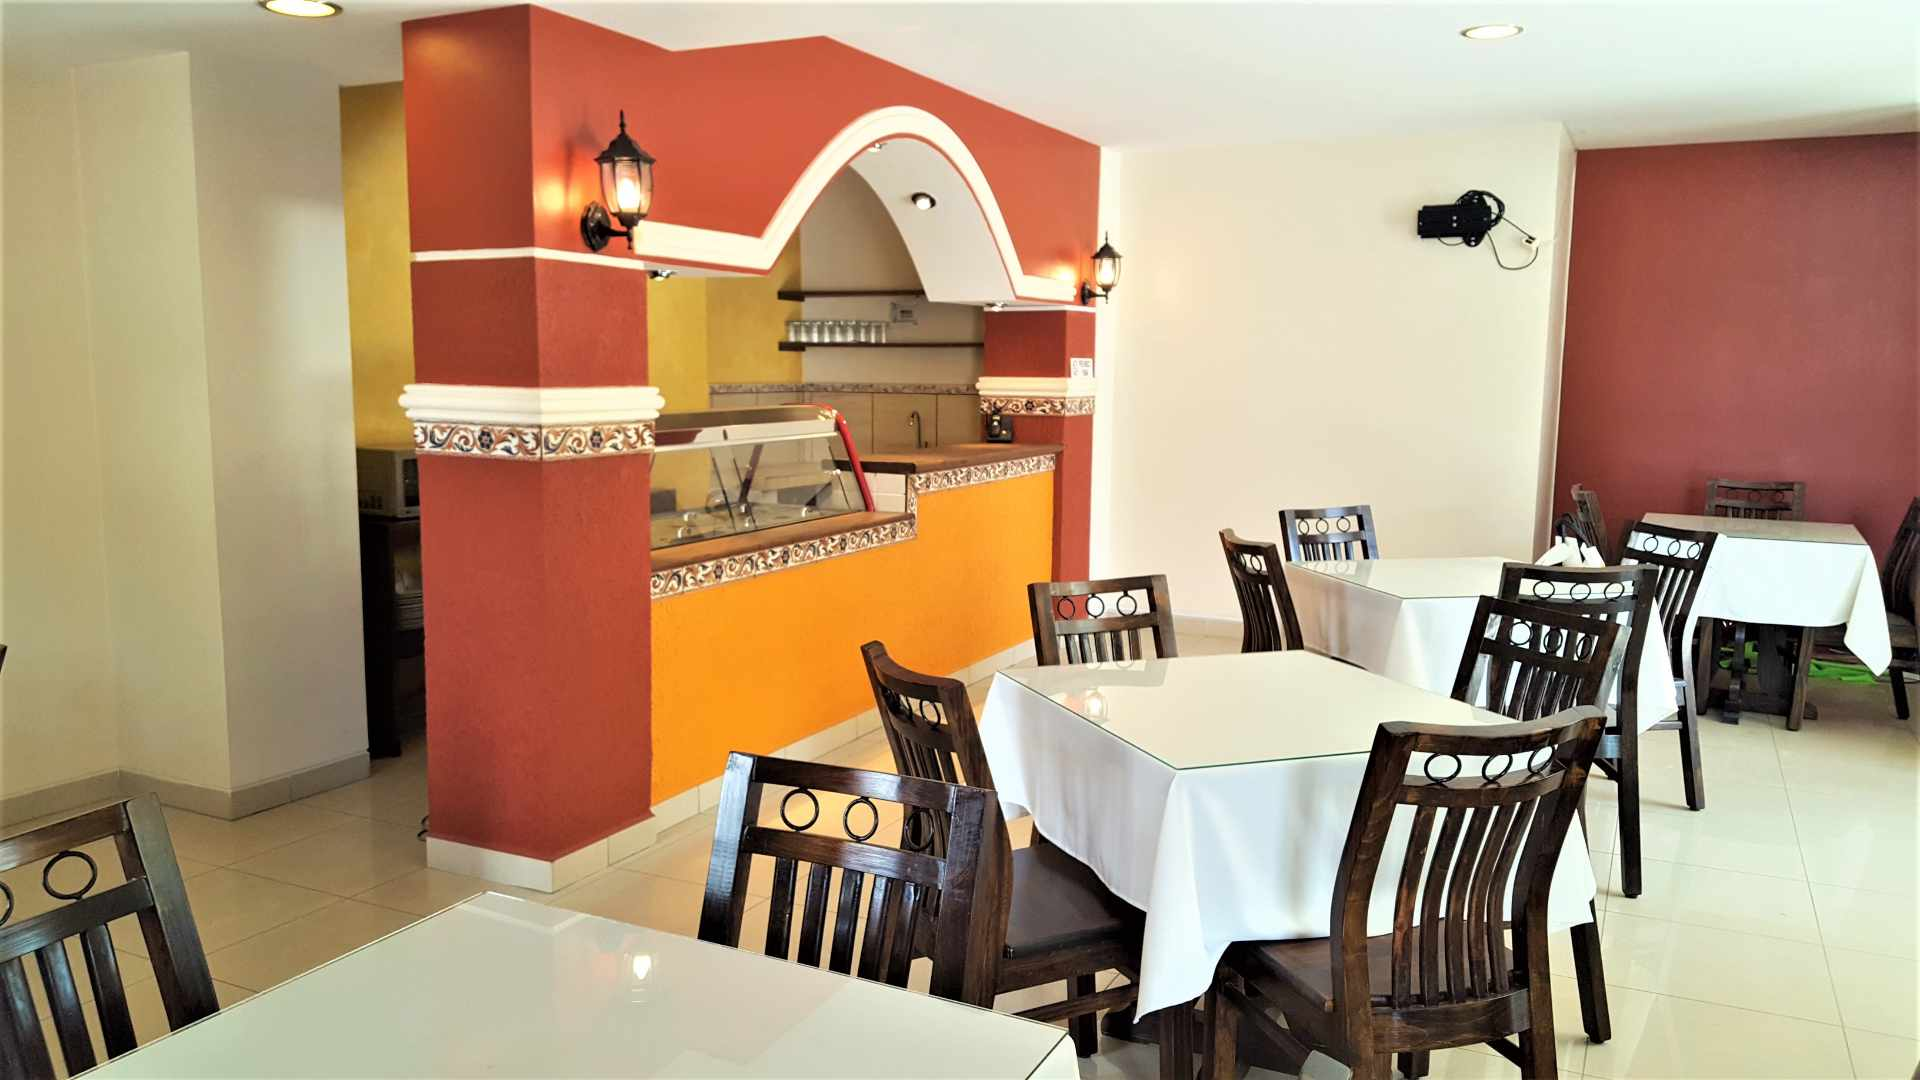 Local comercial en Venta $us 82.000.- LOCAL COMERCIAL IDEAL PARA RESTAURANTE - ZONA CALA CALA. CEL.: 799-98200 Foto 2